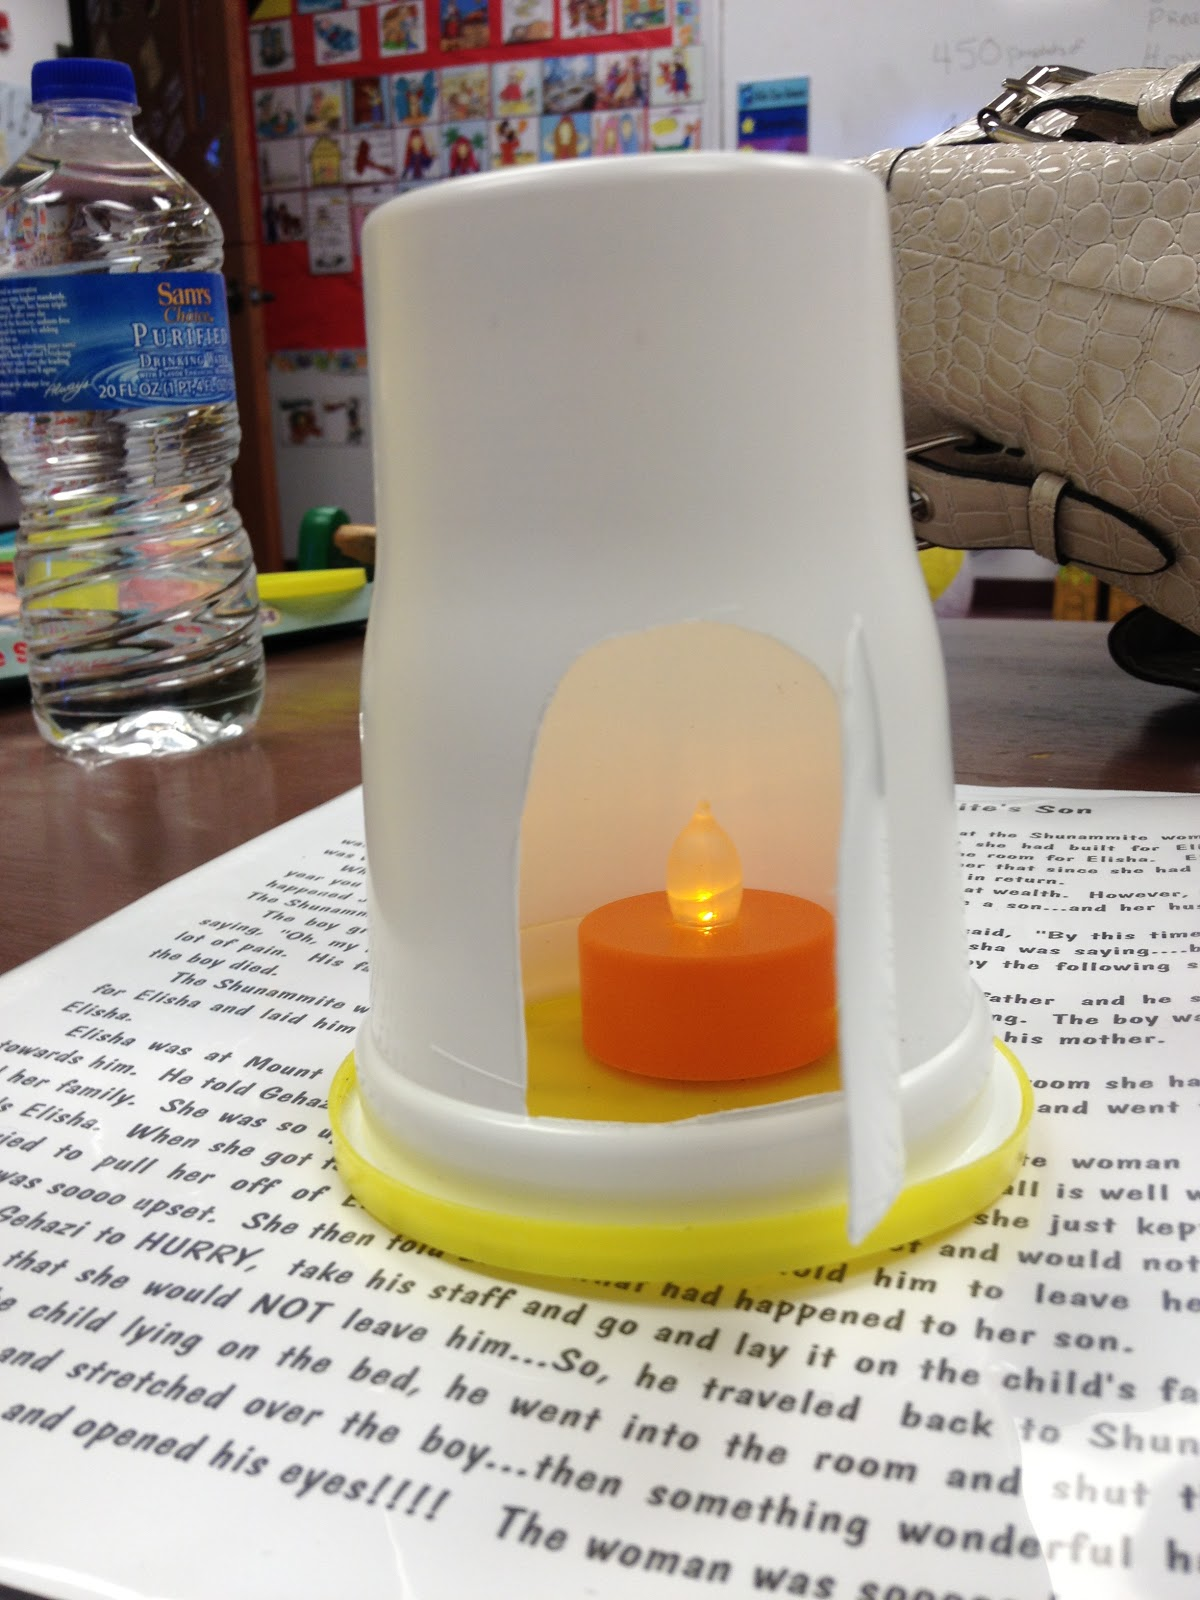 hands on bible teacher cookie container fiery furnace